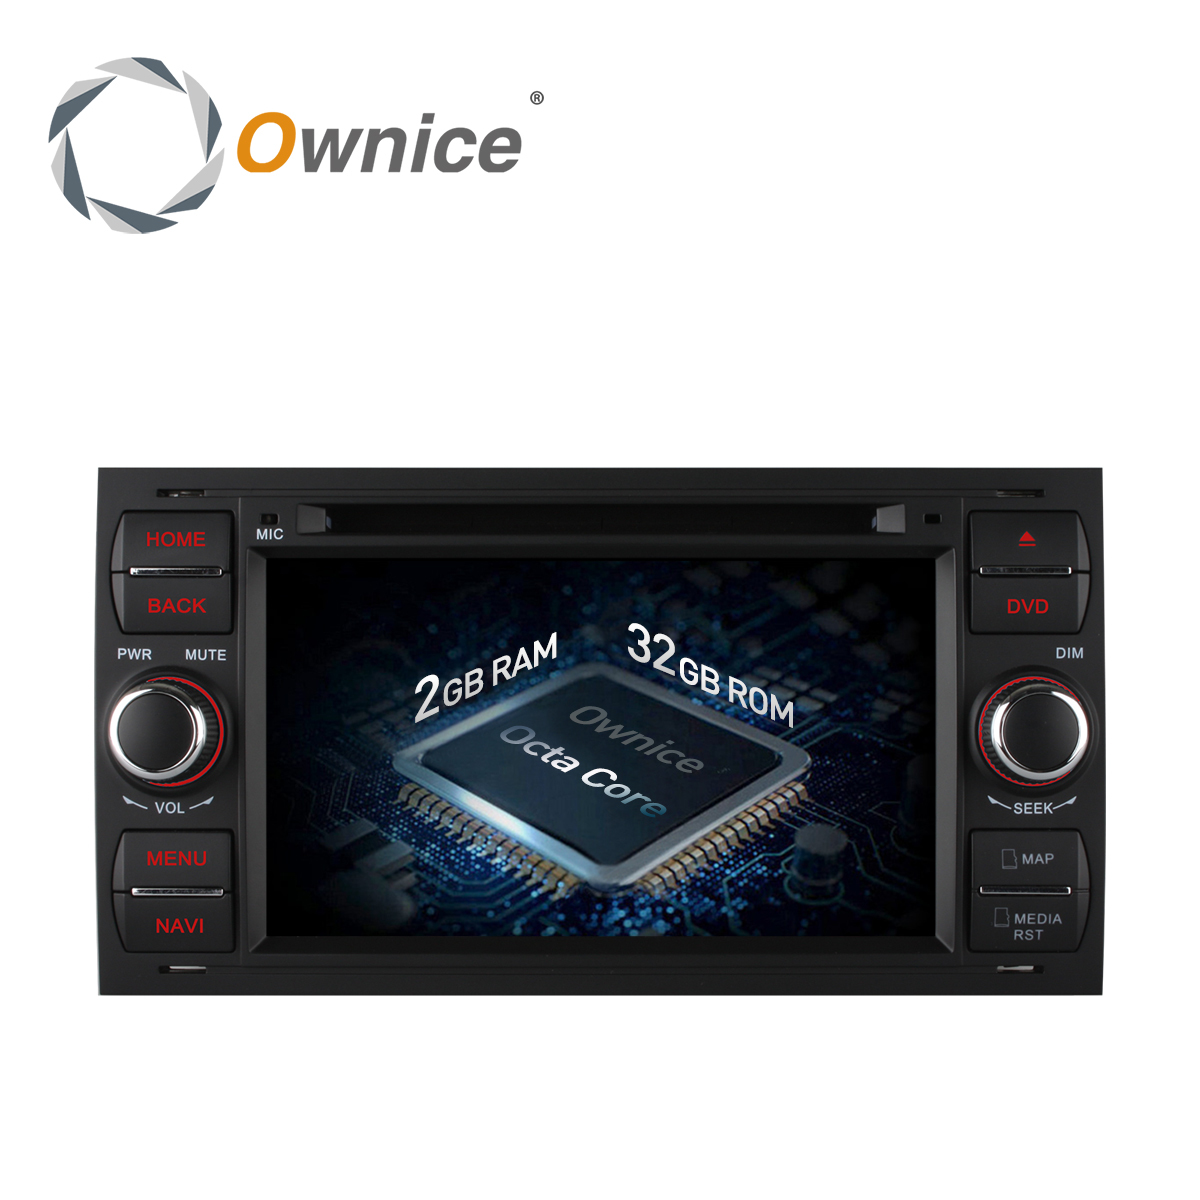 Ownice 4g Sim Lte Android 60 Octa Core 32g Rom Car Dvd Gps Radio Nissan Np200 Fuse Box For Ford Mondeo S Max Focus C Galaxy Fiesta Form Fusion In Multimedia Player From